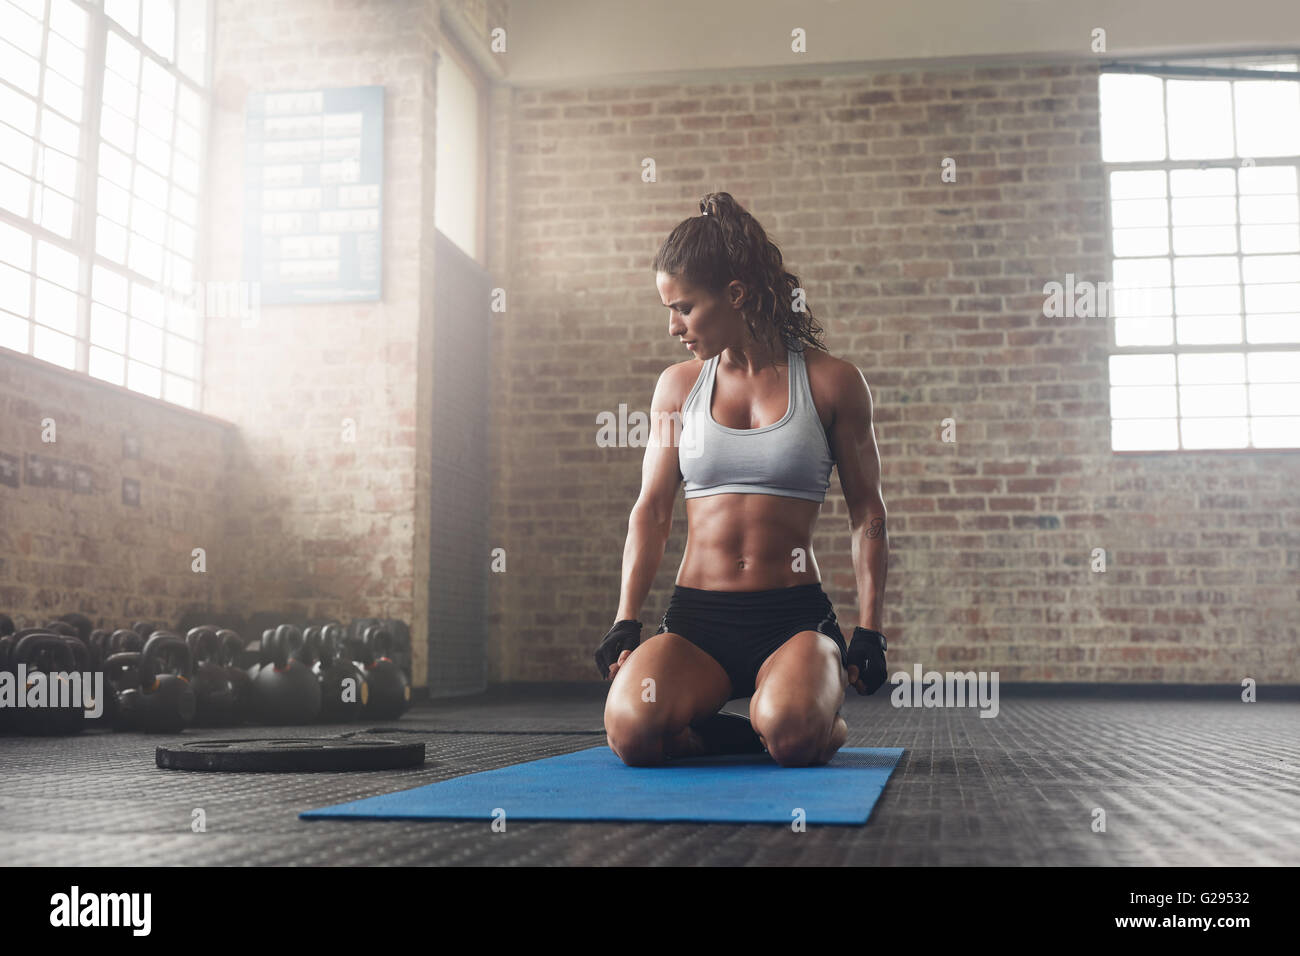 Indoor shot of  fitness young woman sitting on yoga mat at gym. Muscular young female athlete taking a break from - Stock Image